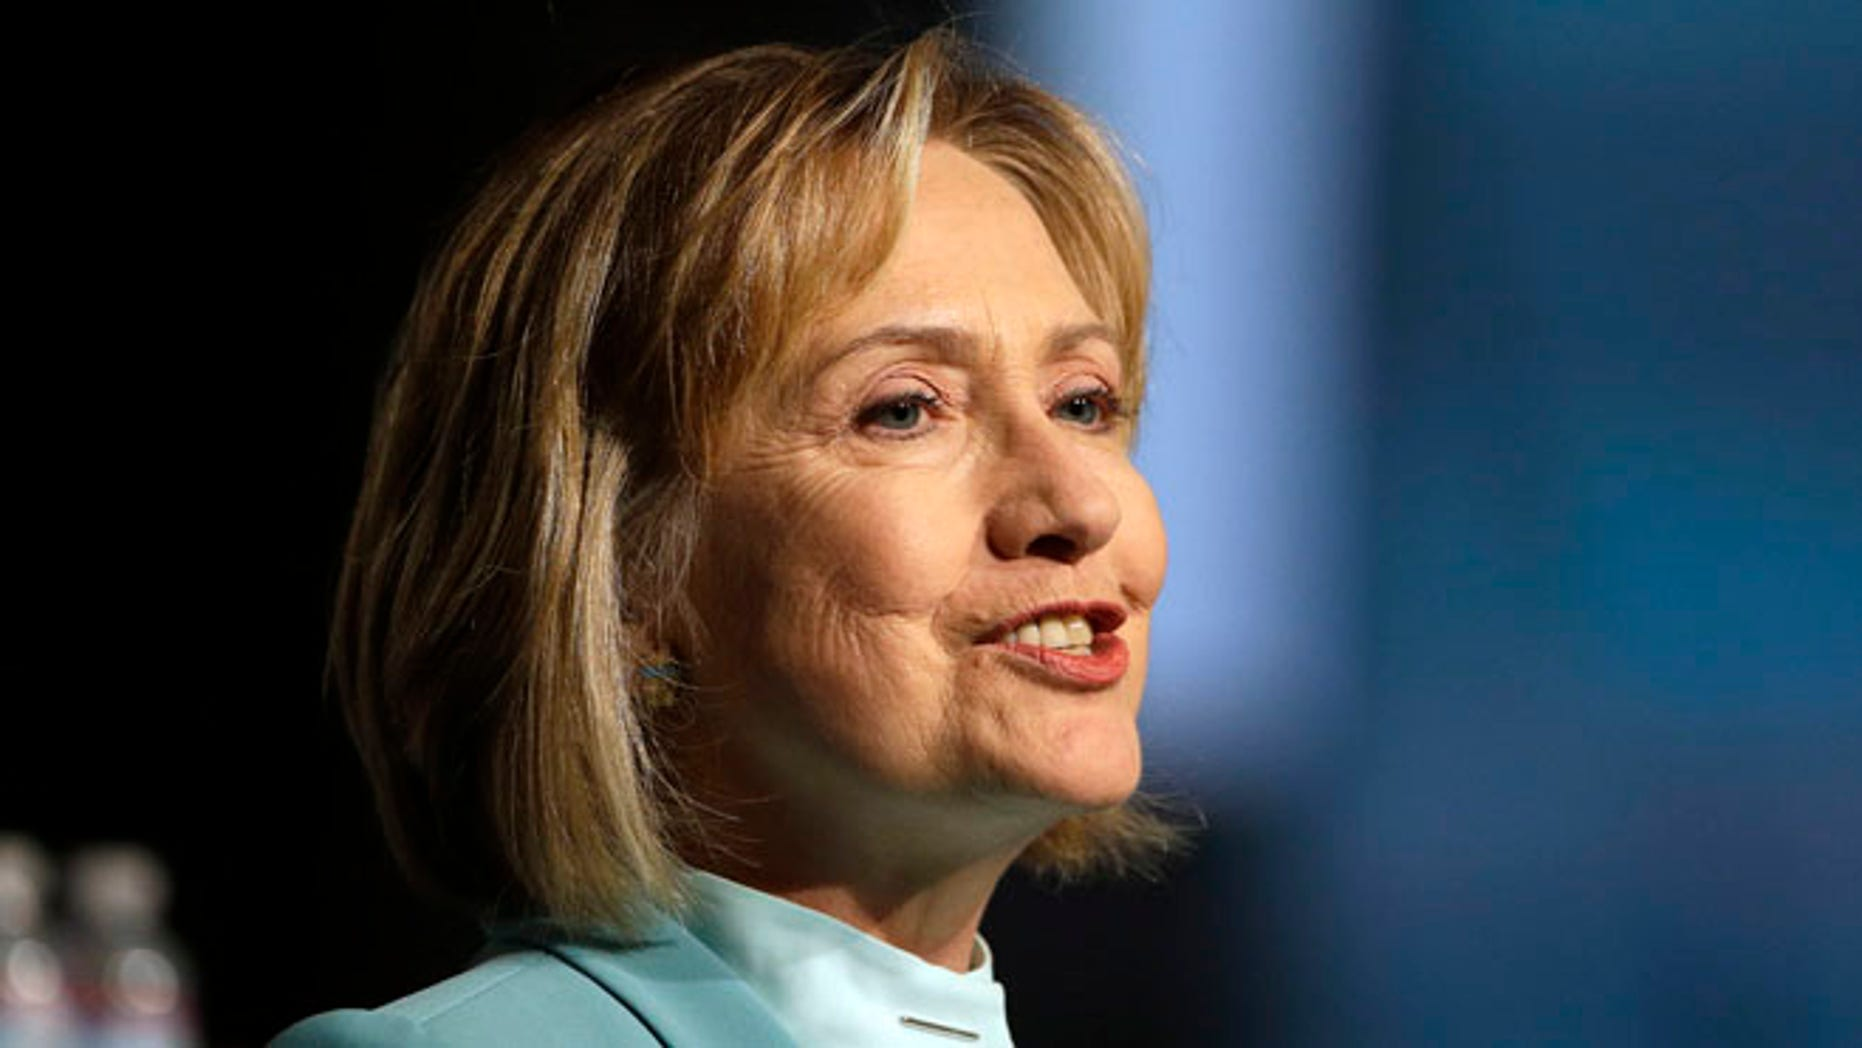 Aug. 12, 2013: Former Secretary of State Hillary Clinton speaks to the American Bar Association Annual Meeting.